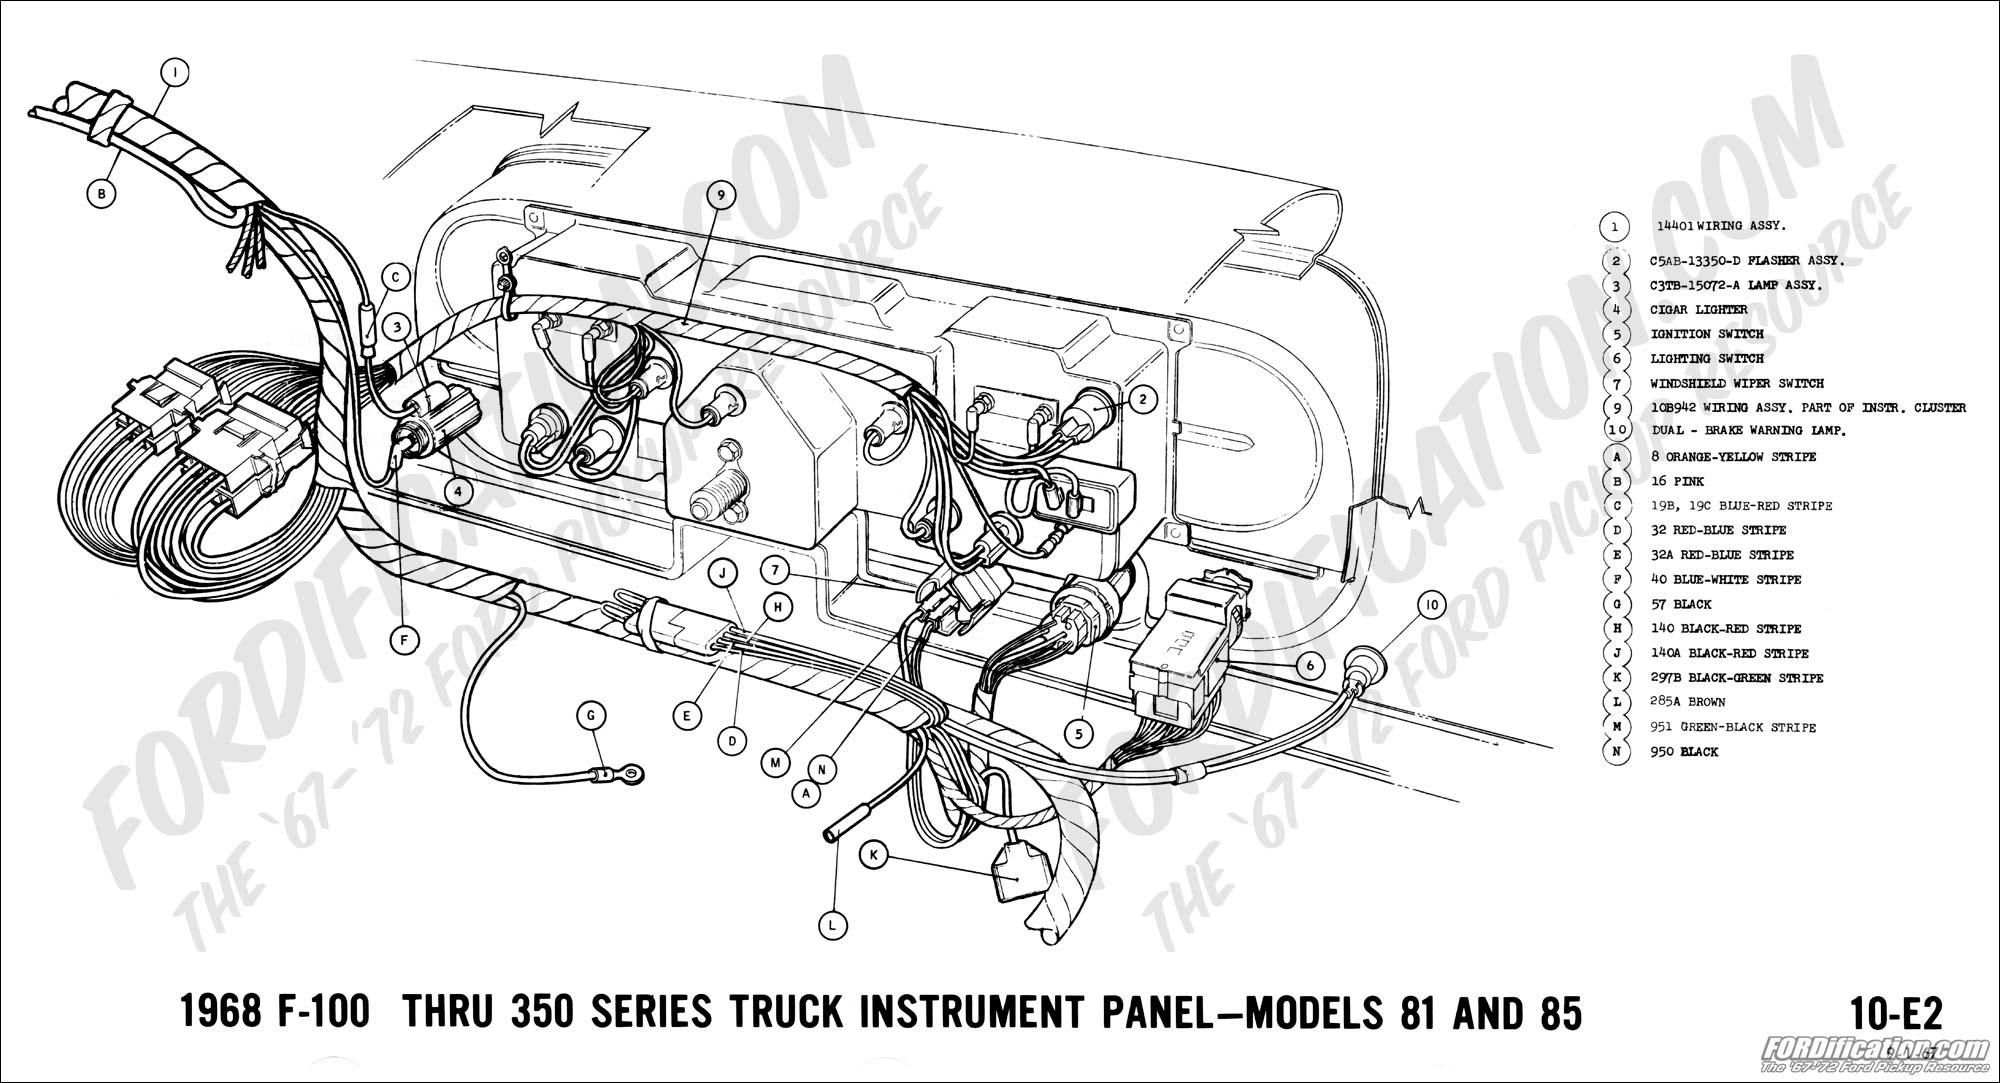 Ford Ignition System Wiring Diagram on ford ranger 2.9 wiring-diagram, basic ignition system diagram, 1974 ford ignition wiring diagram, 1980 ford ignition wiring diagram, ford electrical wiring diagrams, ford ignition solenoid, msd ignition wiring diagram, ford falcon wiring-diagram, ignition coil wiring diagram, ford cop ignition wiring diagrams, ford tractor ignition switch wiring, ford wiring harness diagrams, 1976 ford ignition wiring diagram, 1968 ford f100 ignition wiring diagram, 1994 ford bronco ignition wiring diagram, ford ignition wiring diagram fuel, ford ignition module schematic, 1989 ford f250 ignition wiring diagram, ford 302 ignition wiring diagram, 1979 ford ignition wiring diagram,